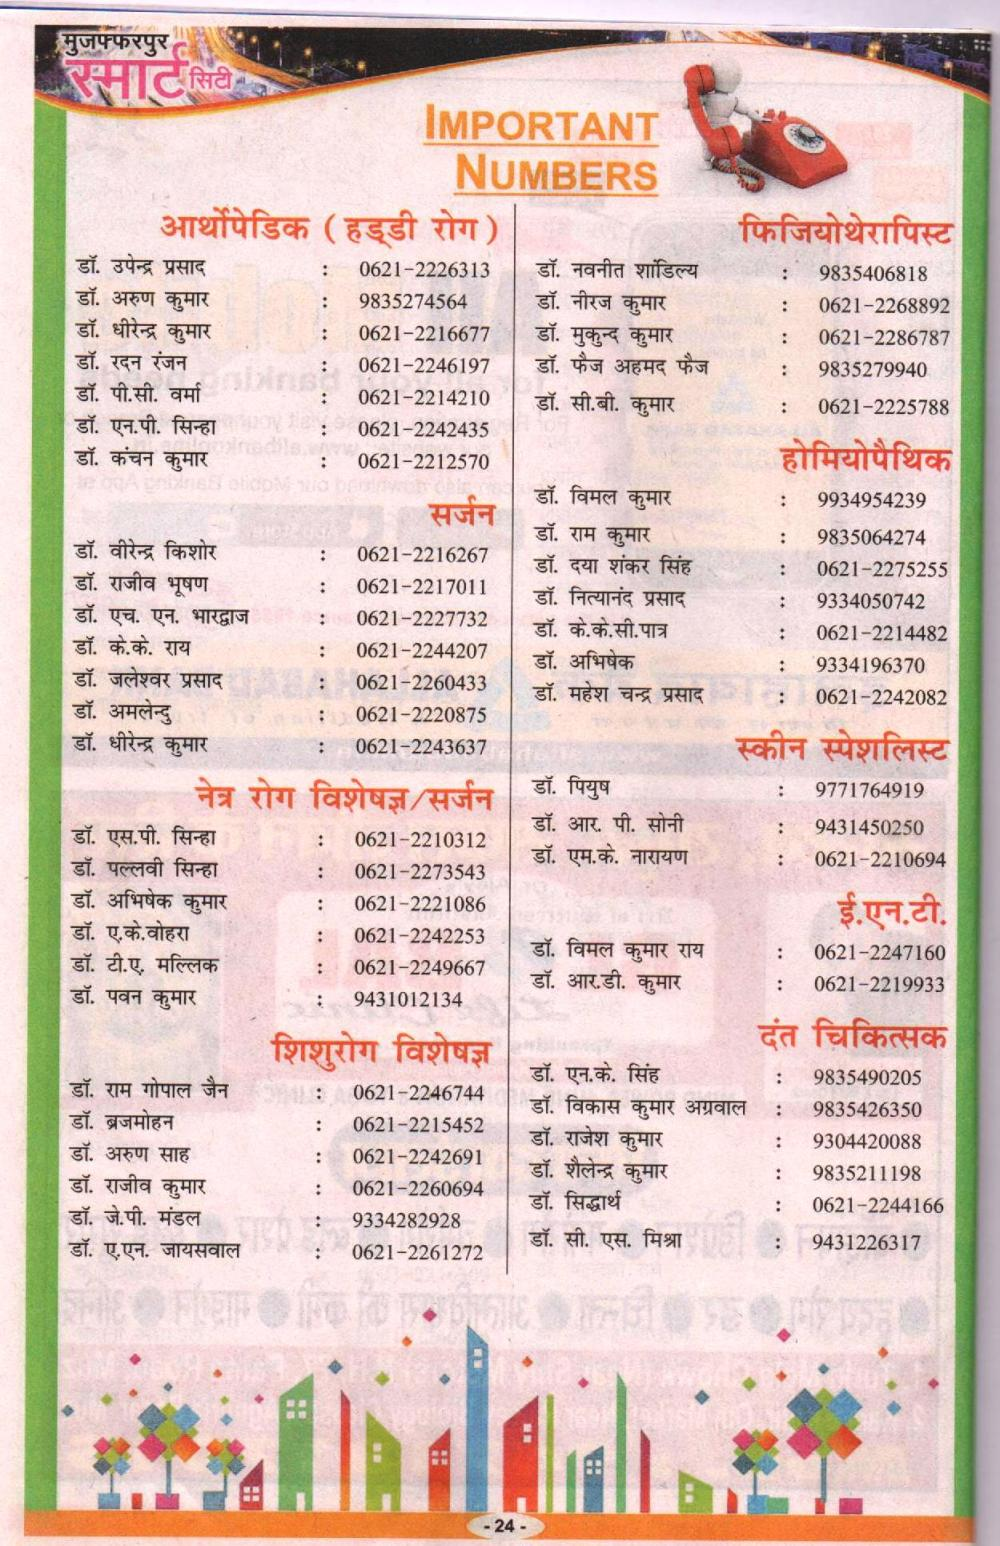 muzaffarpur smart city magazine (9)